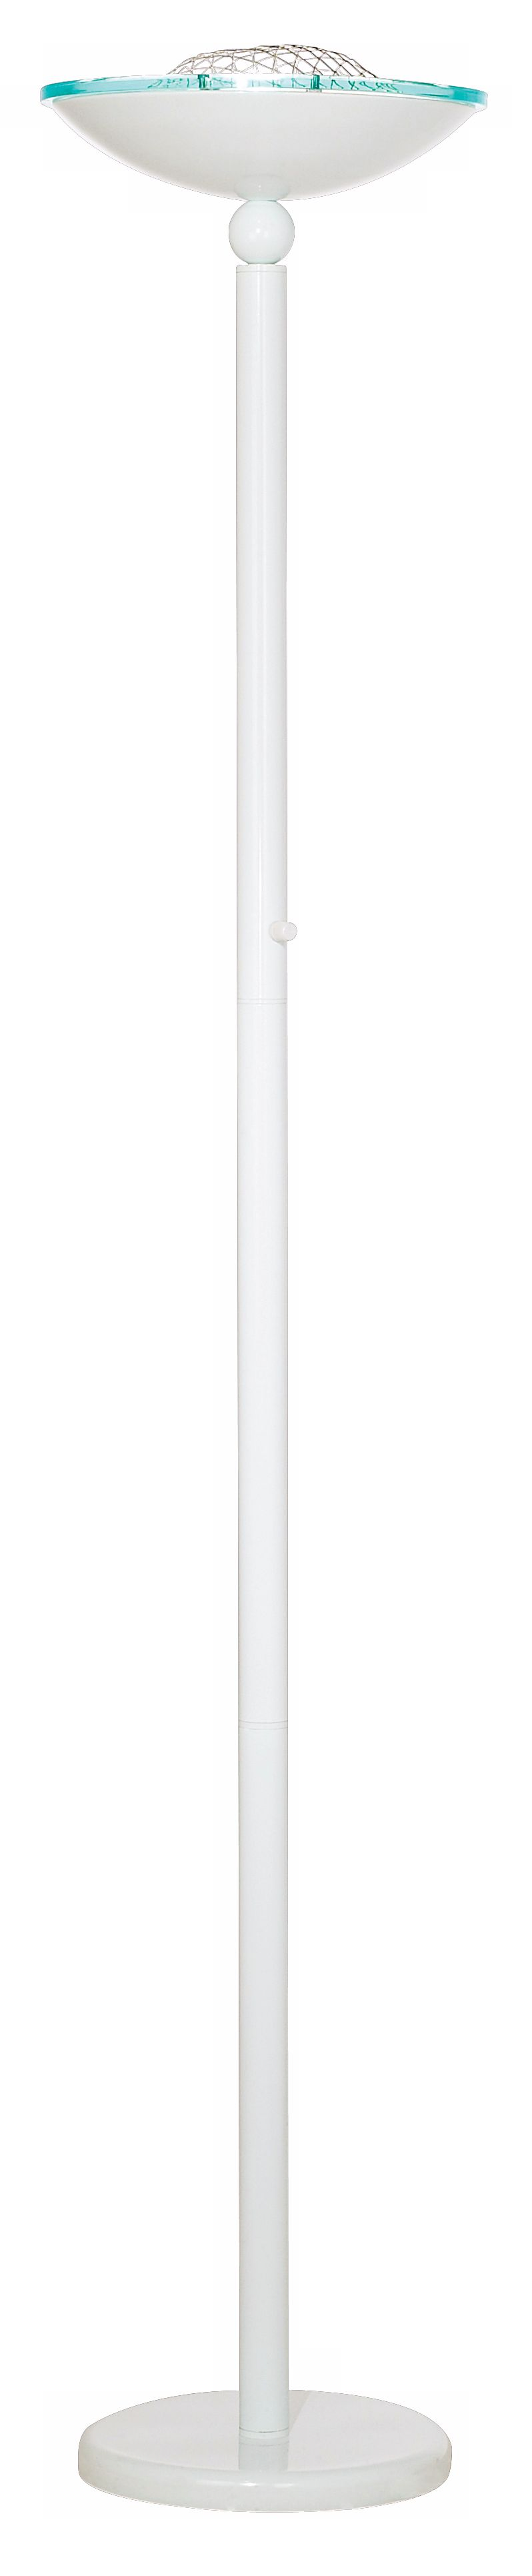 crockett white halogen 150 watt torchiere floor lamp - Halogen Floor Lamp